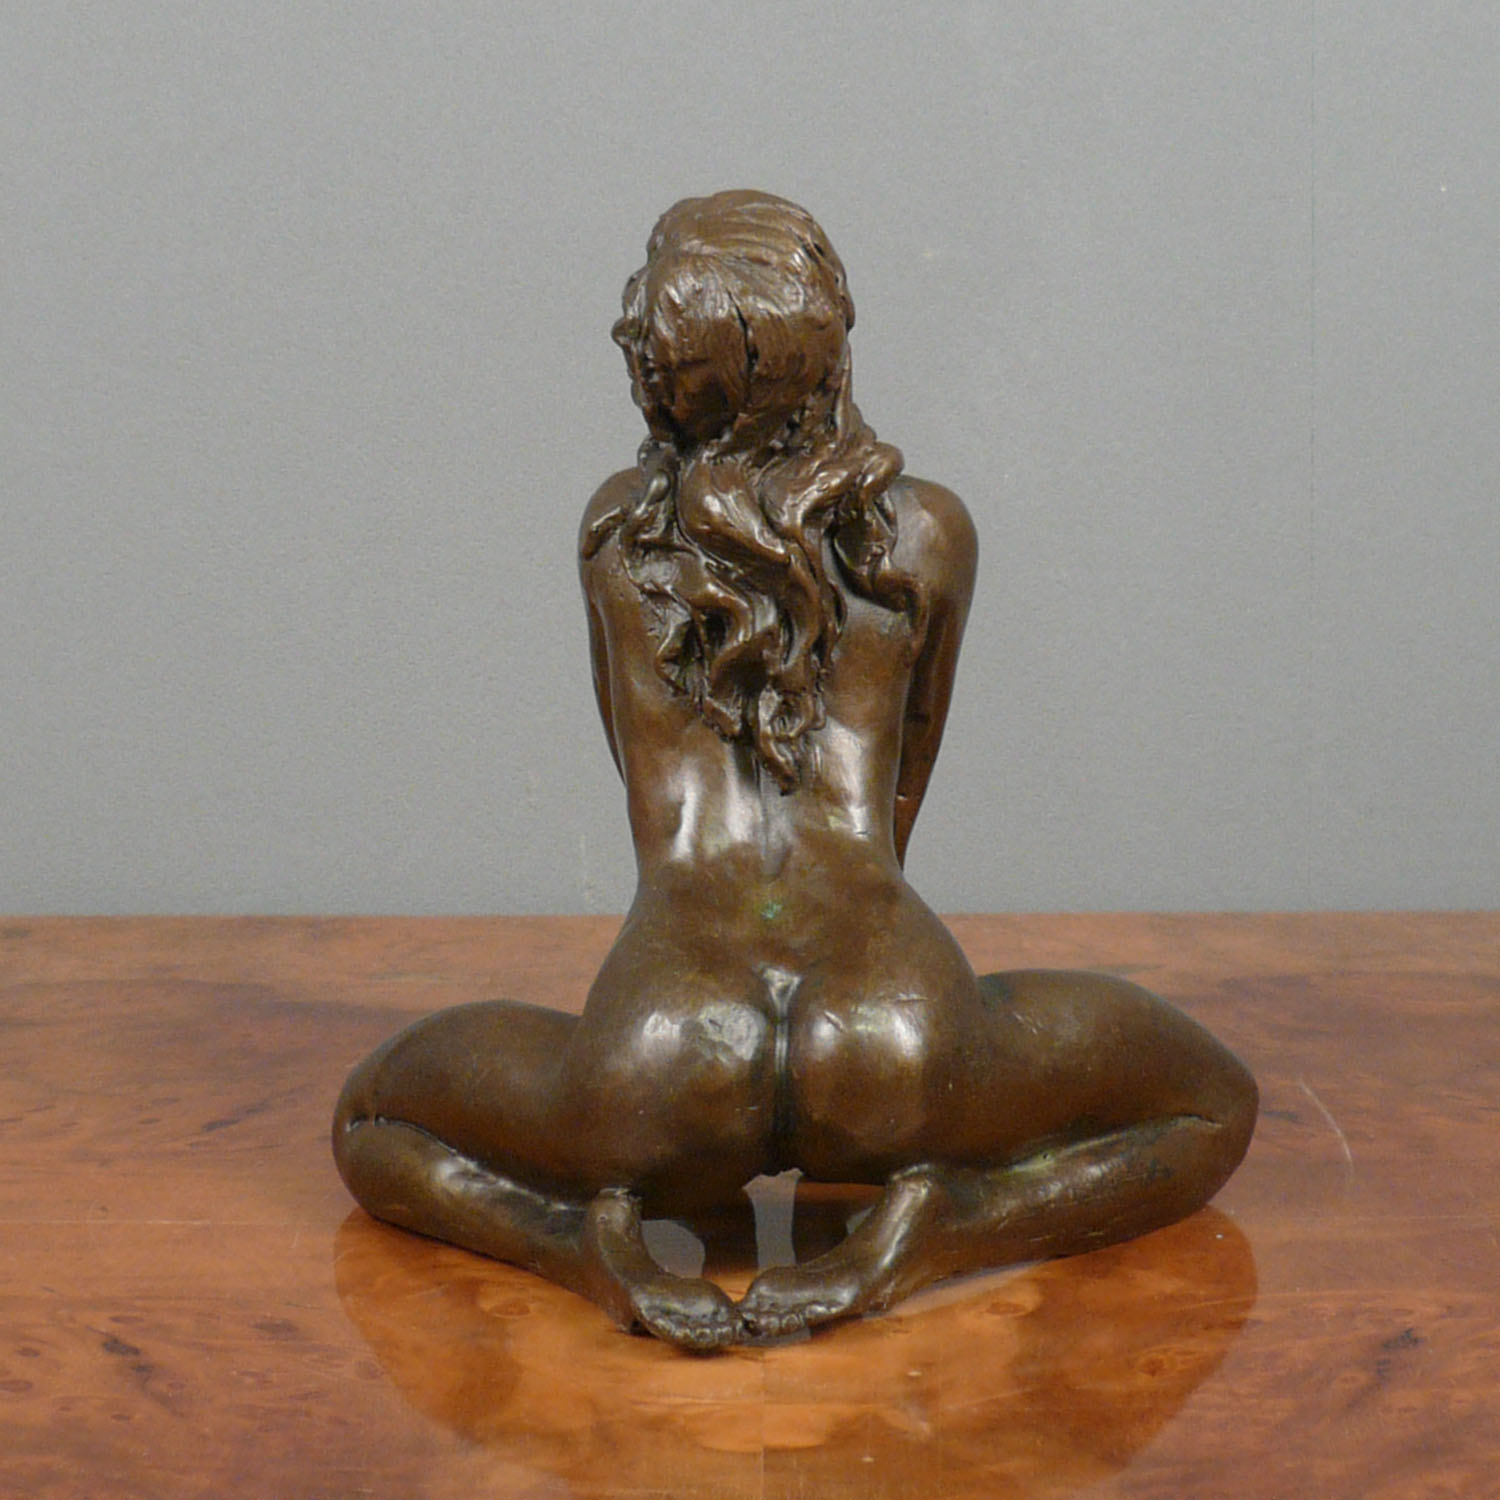 Bronze erotic sculpture